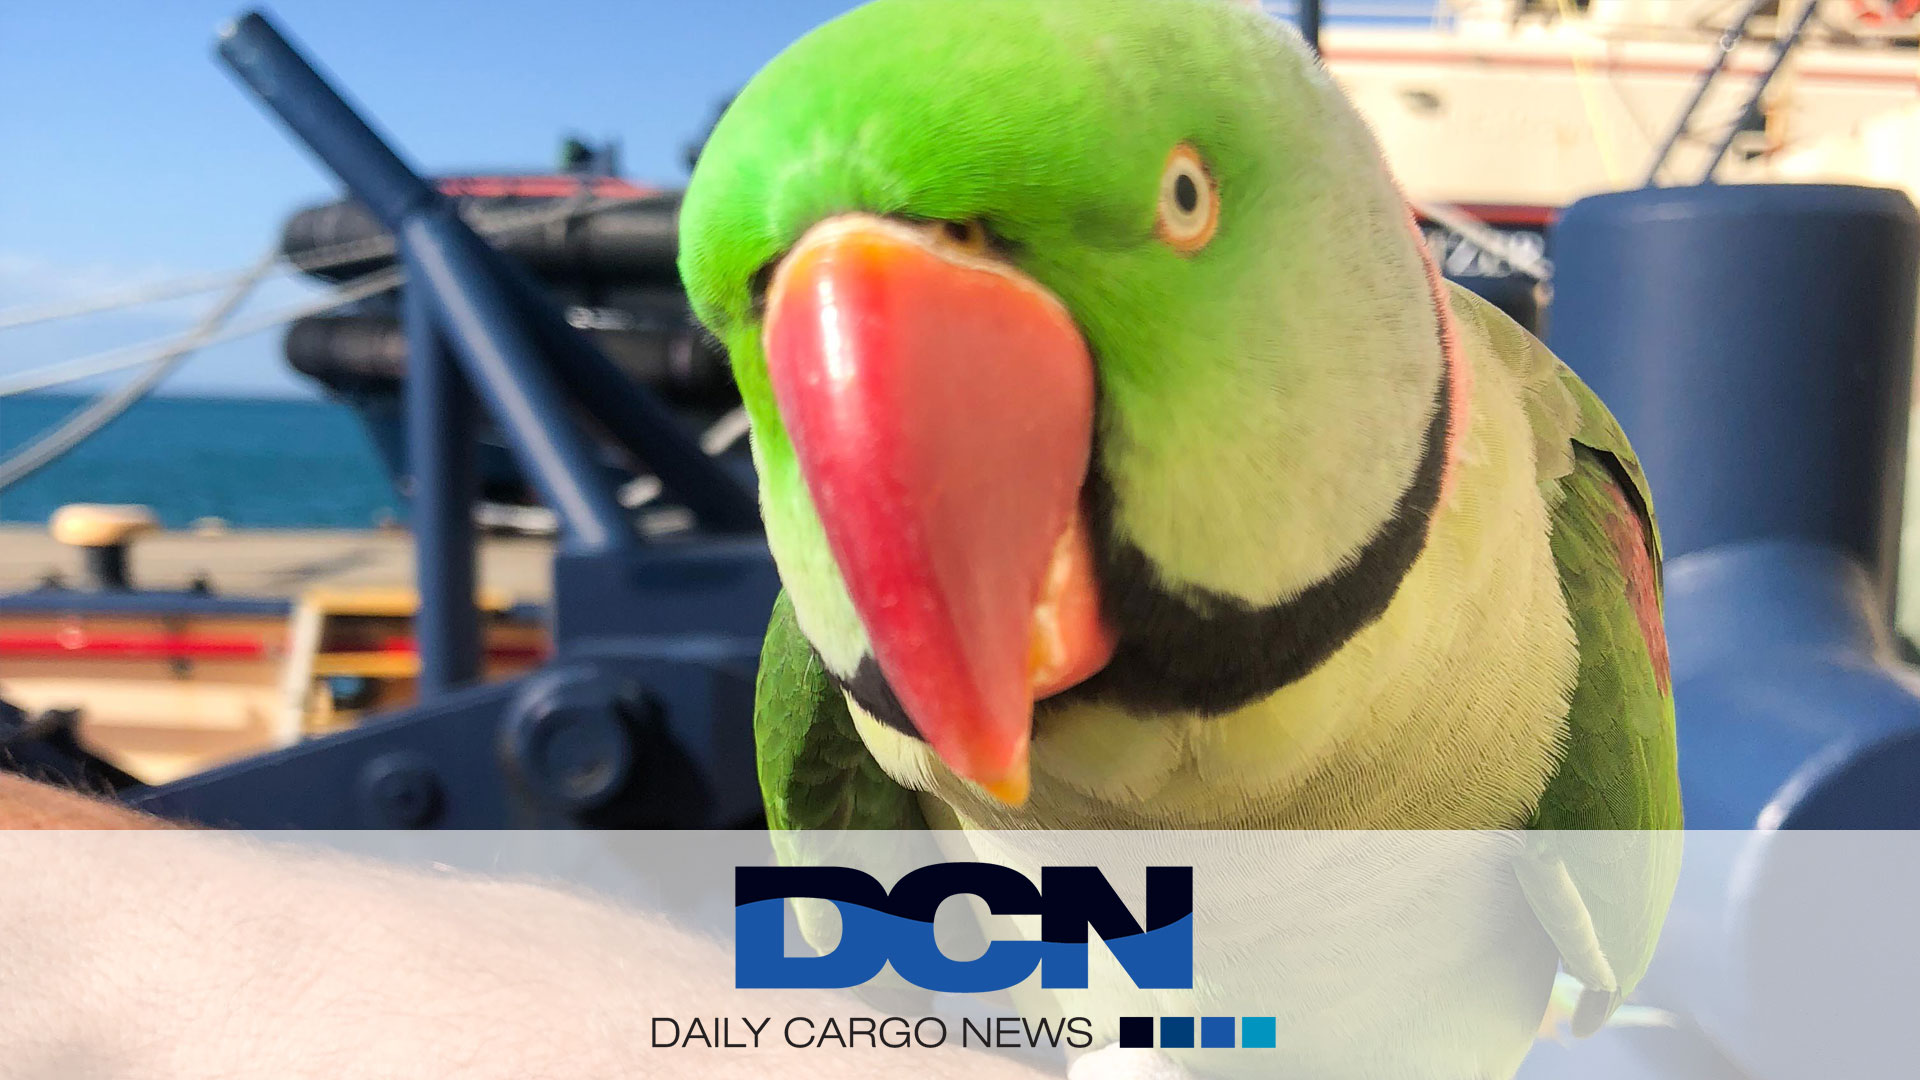 Tug crew rescues parrot